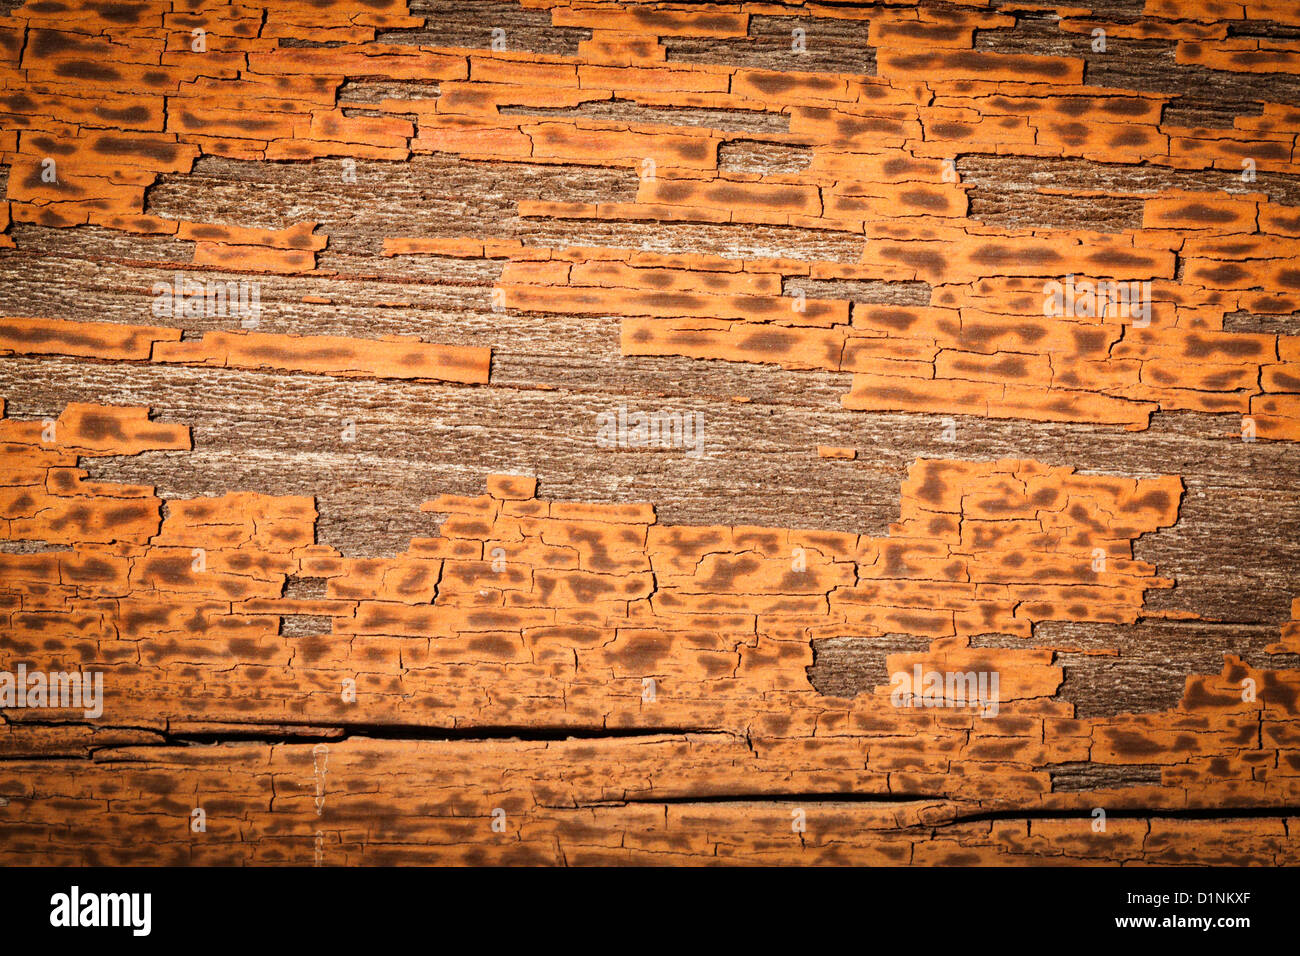 Some old wood siding showing reddish brown peeling paint. - Stock Image